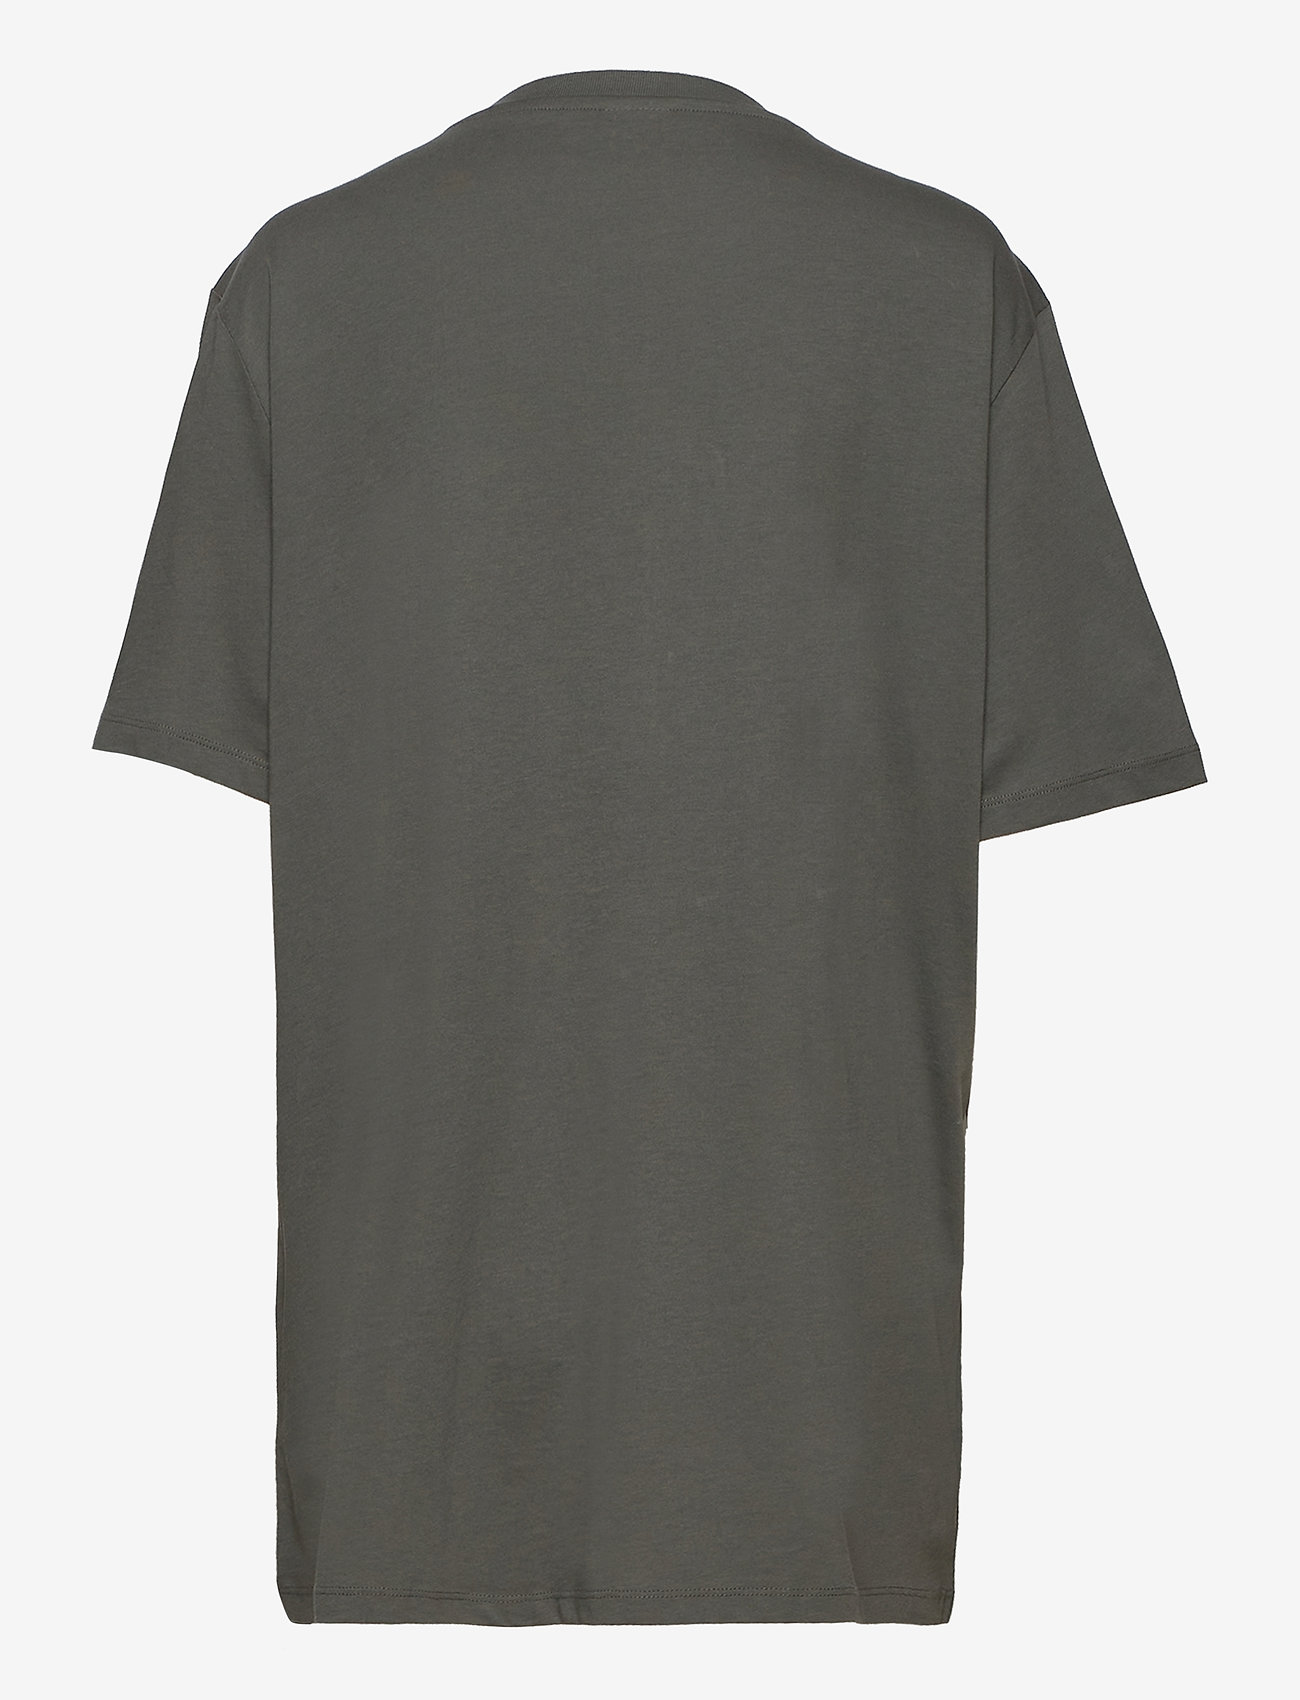 Boob - The-shirt oversized - t-shirts - willow green - 1